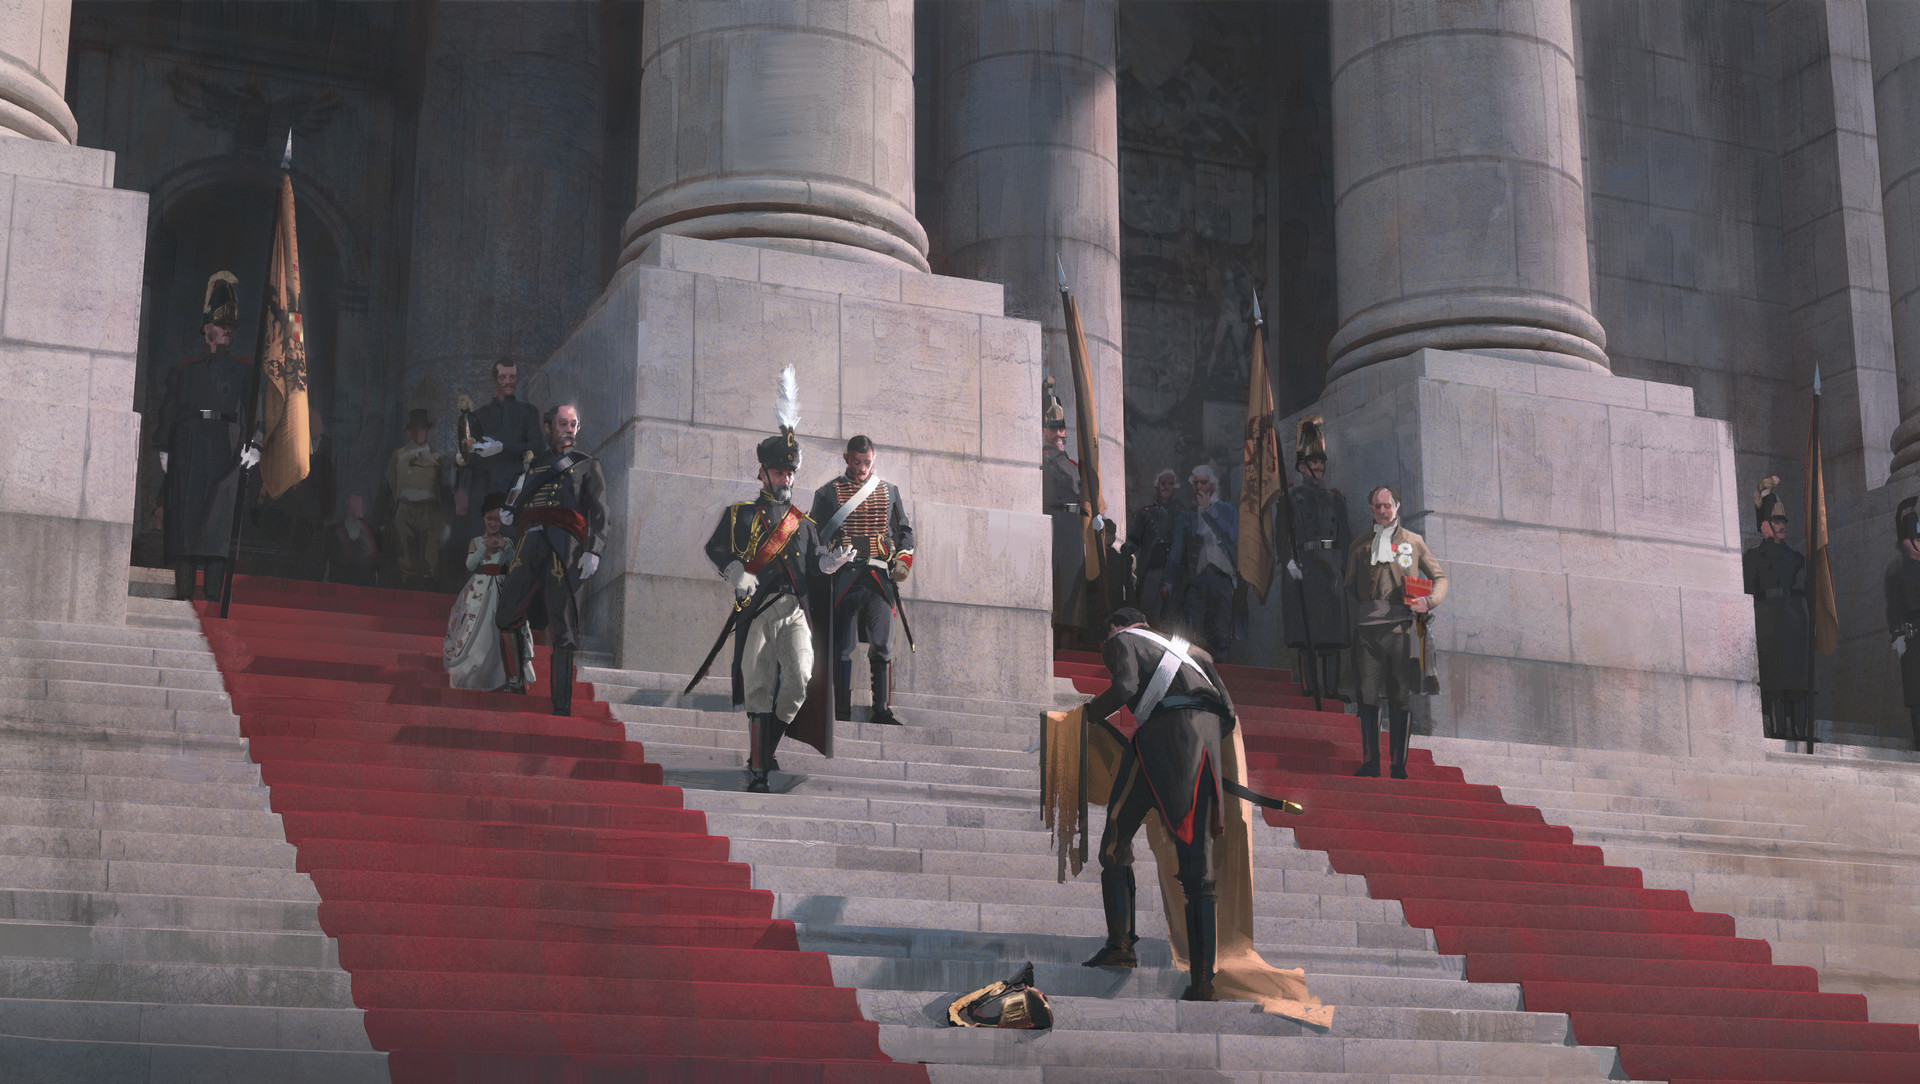 Nick Gindraux Digital Painting illsutration Loss after the battle of Austerlitz